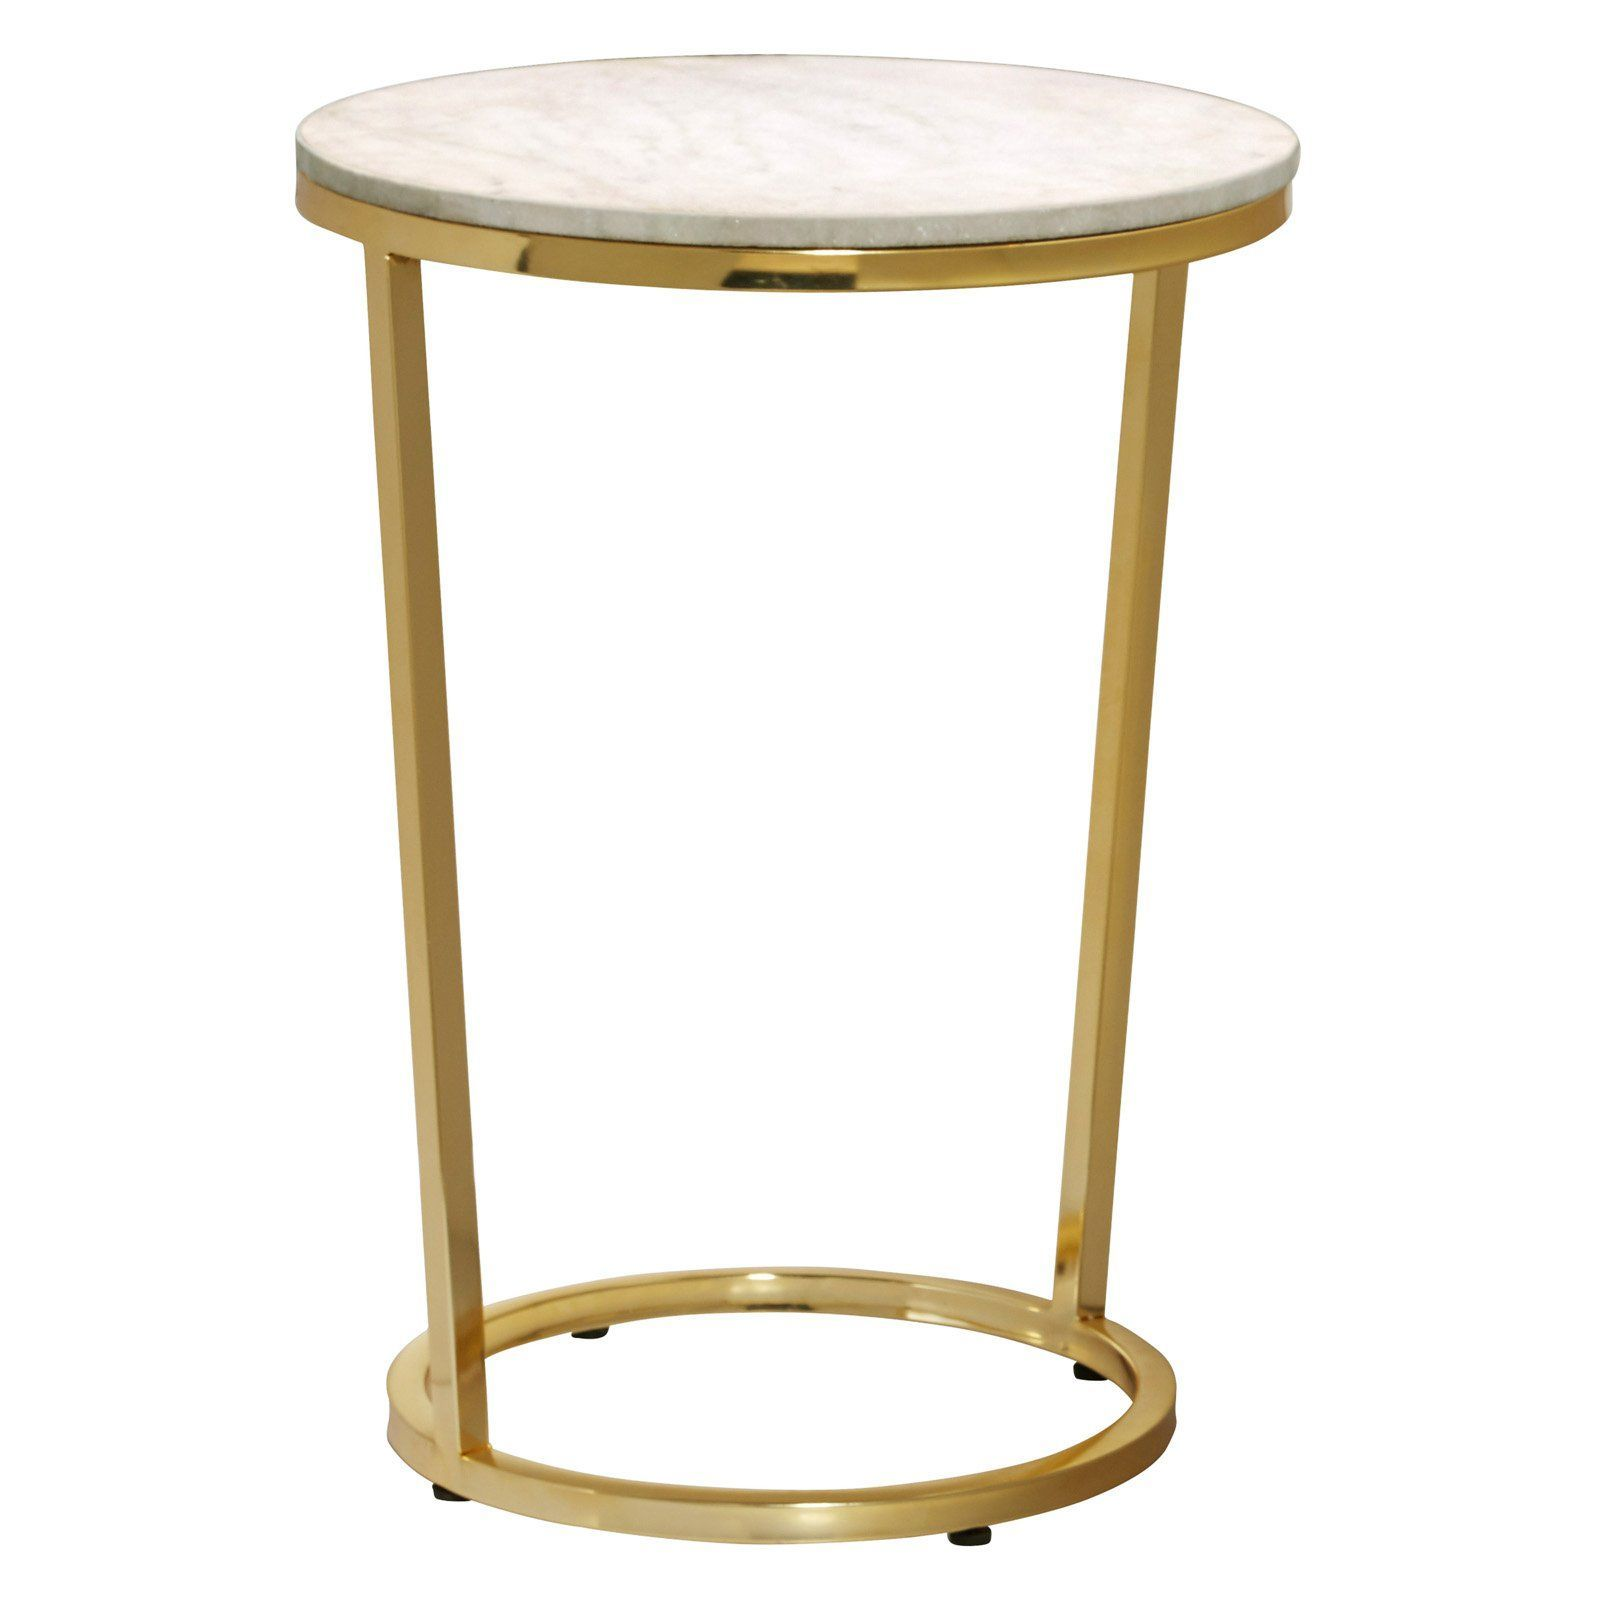 pulaski marble and steel accent table products gold the proves that simple can stunning base finished gleaming sets off sophisticated top distressed blue oval dining cover set